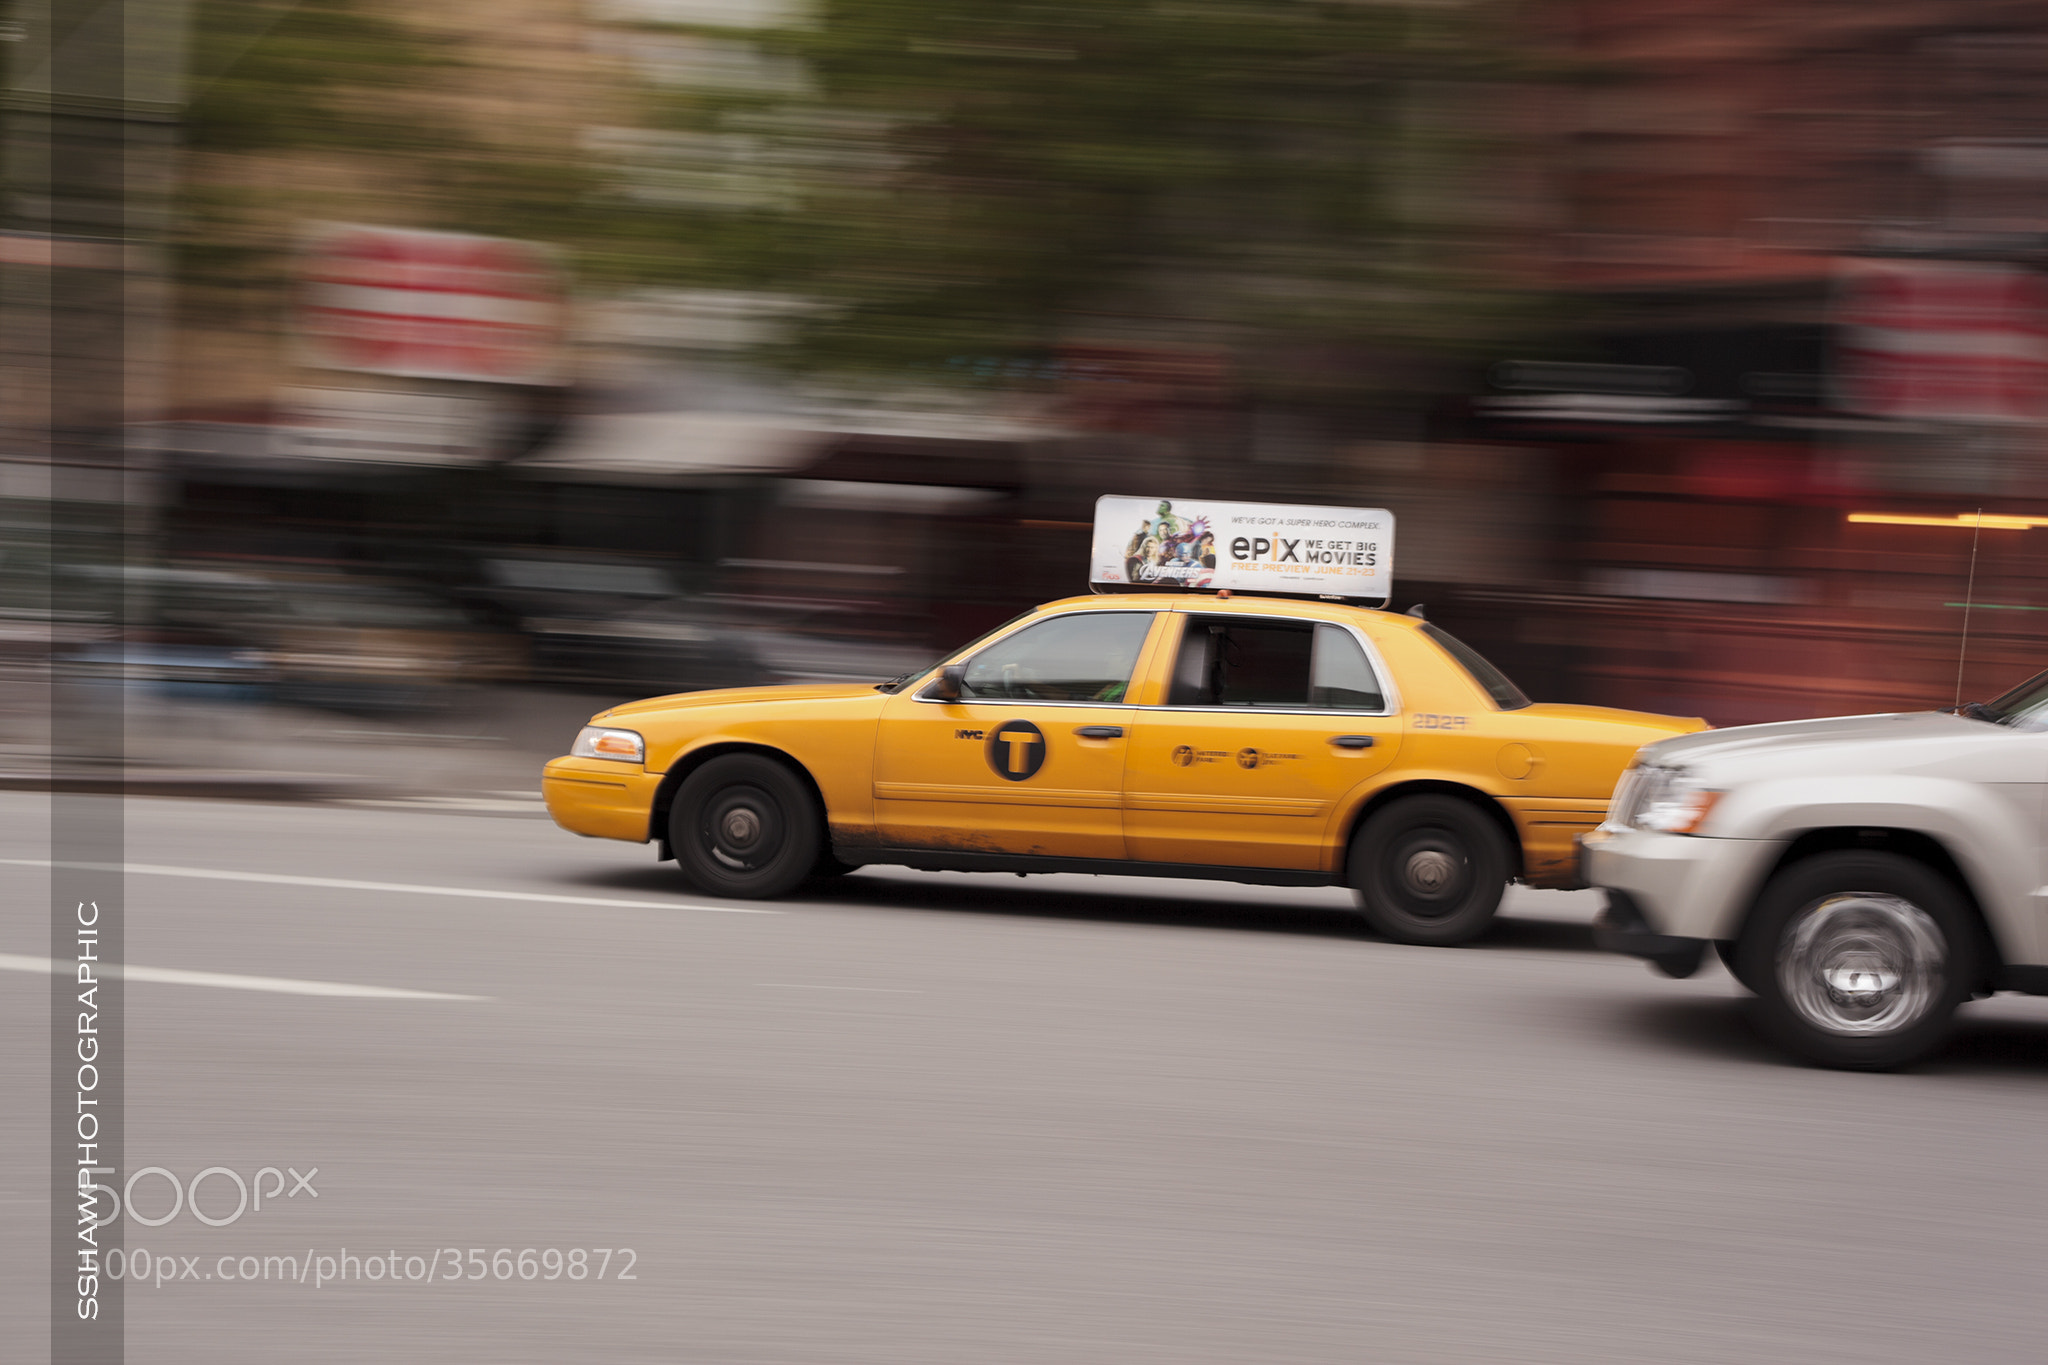 Photograph Taxi  by Shane Shaw on 500px